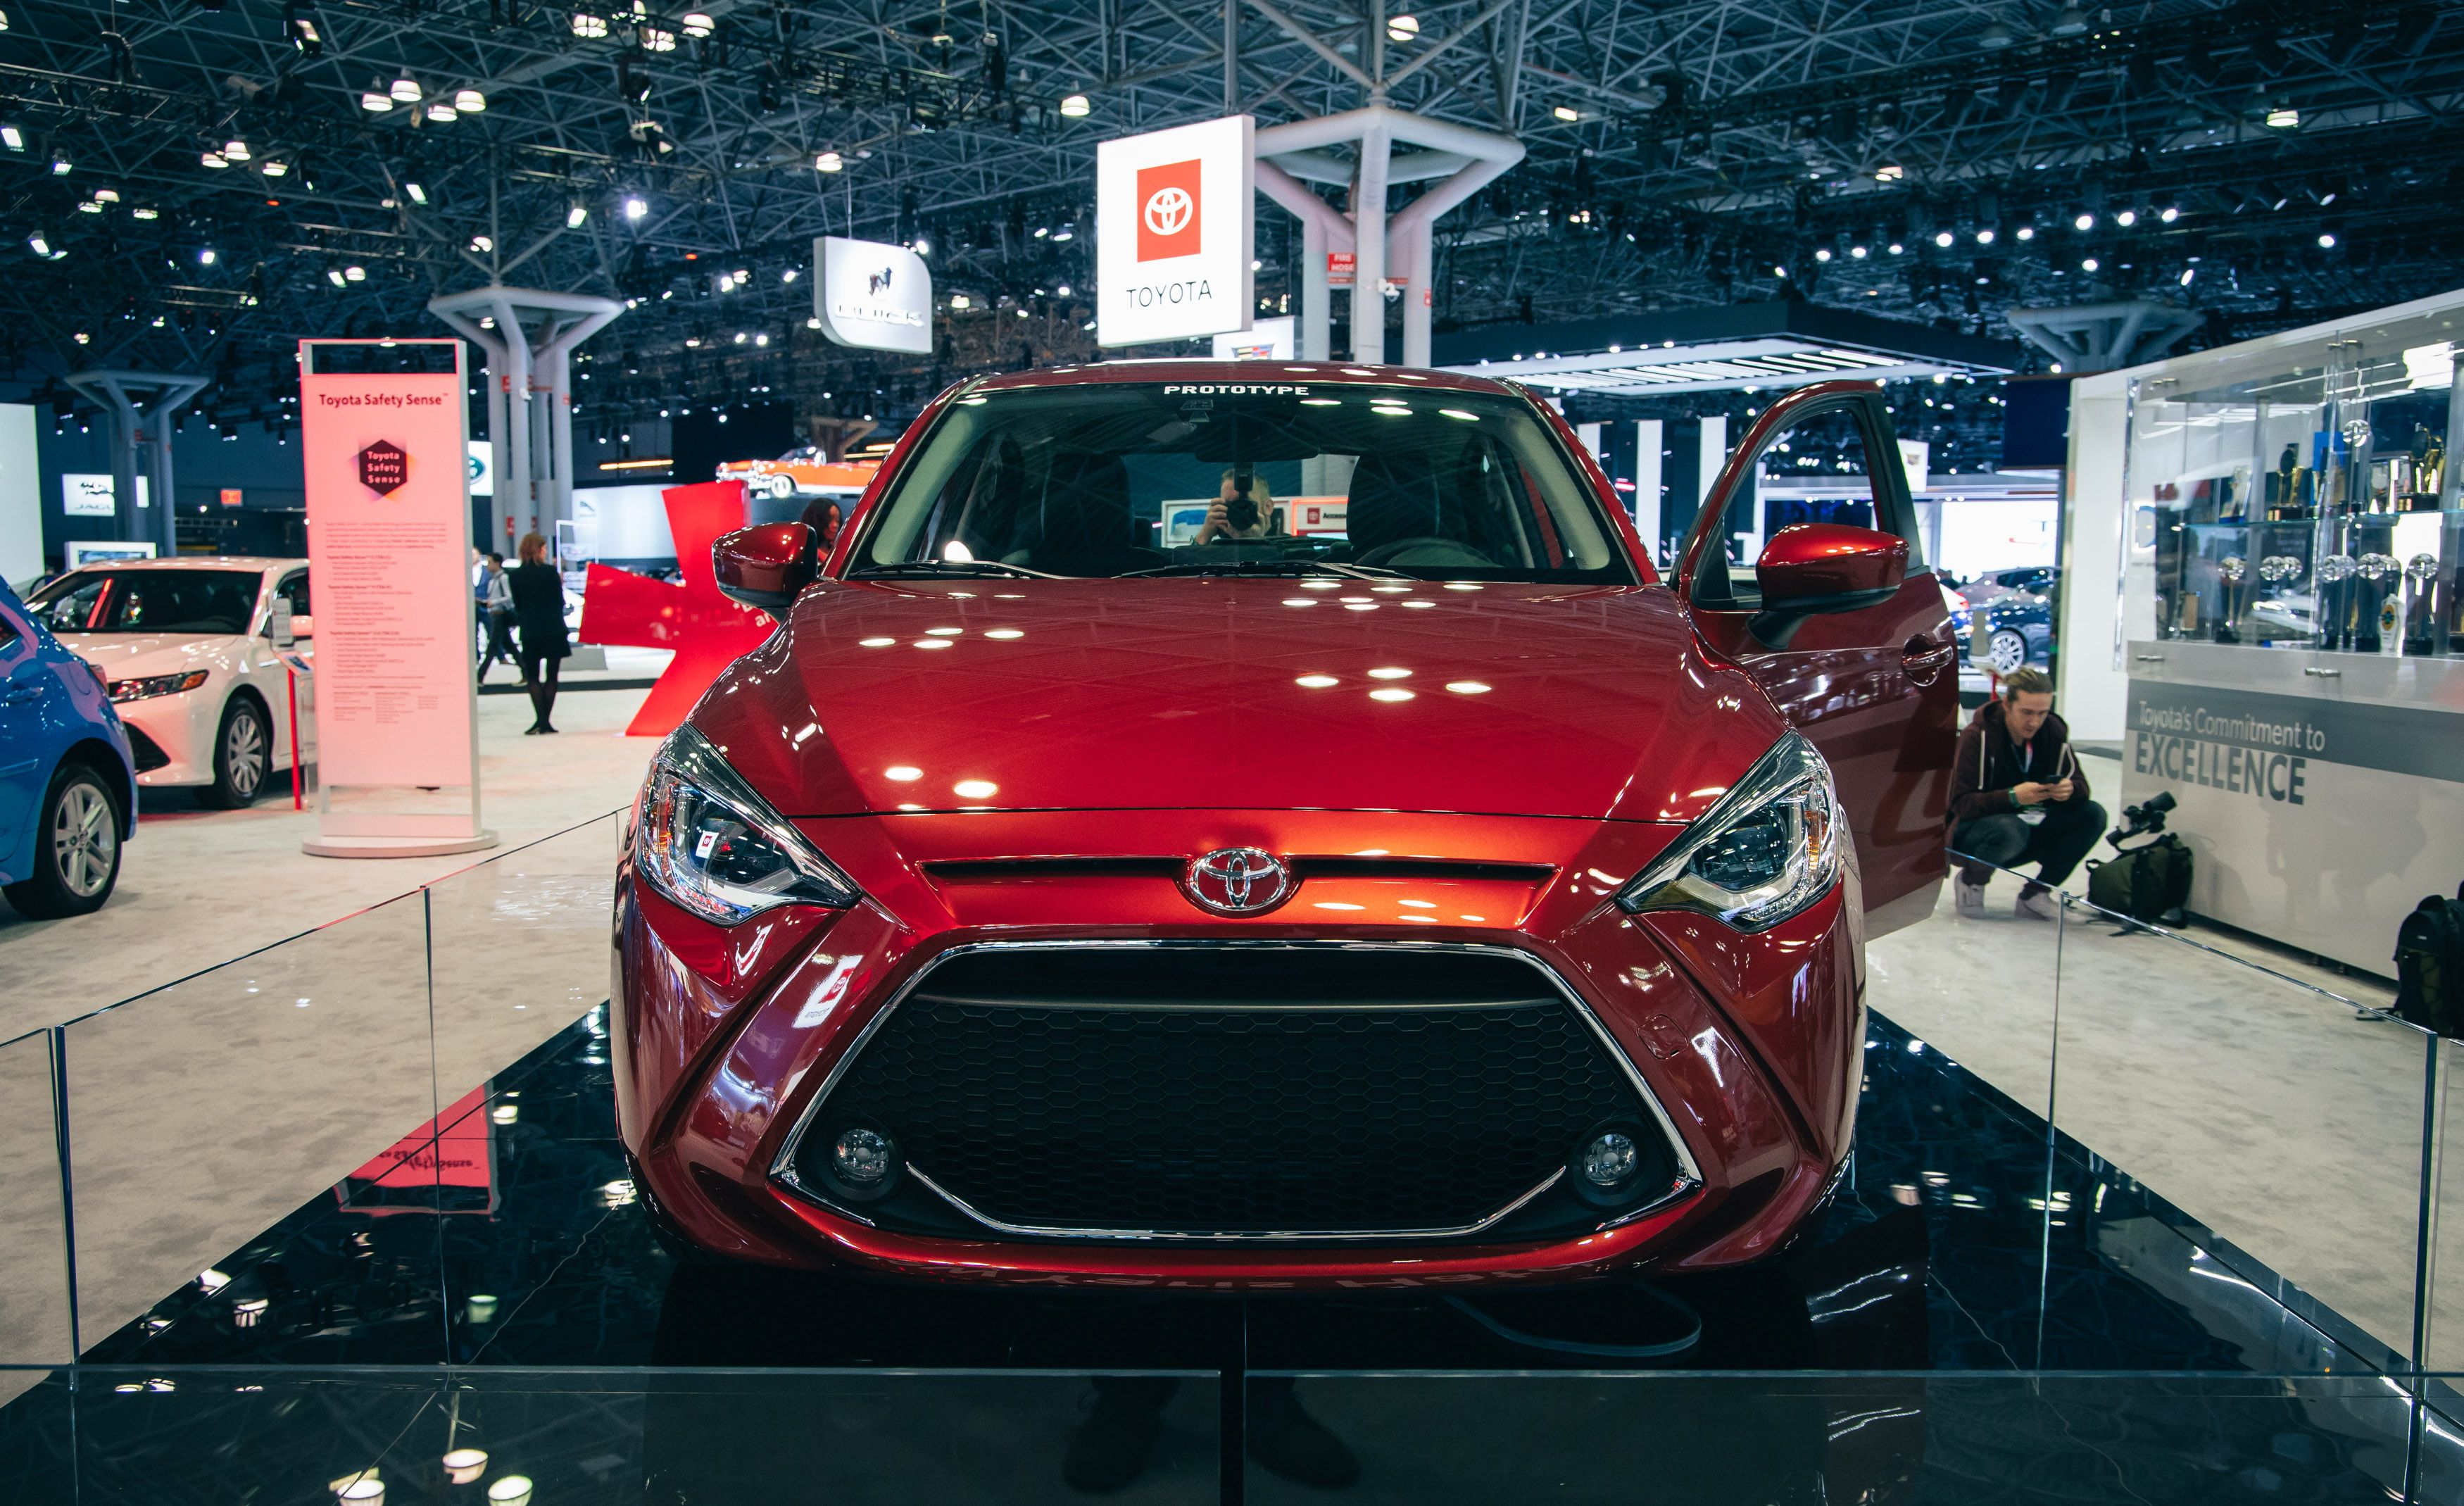 2020 Toyota Yaris Hatchback Subcompact Is A Rebadged Mazda 2